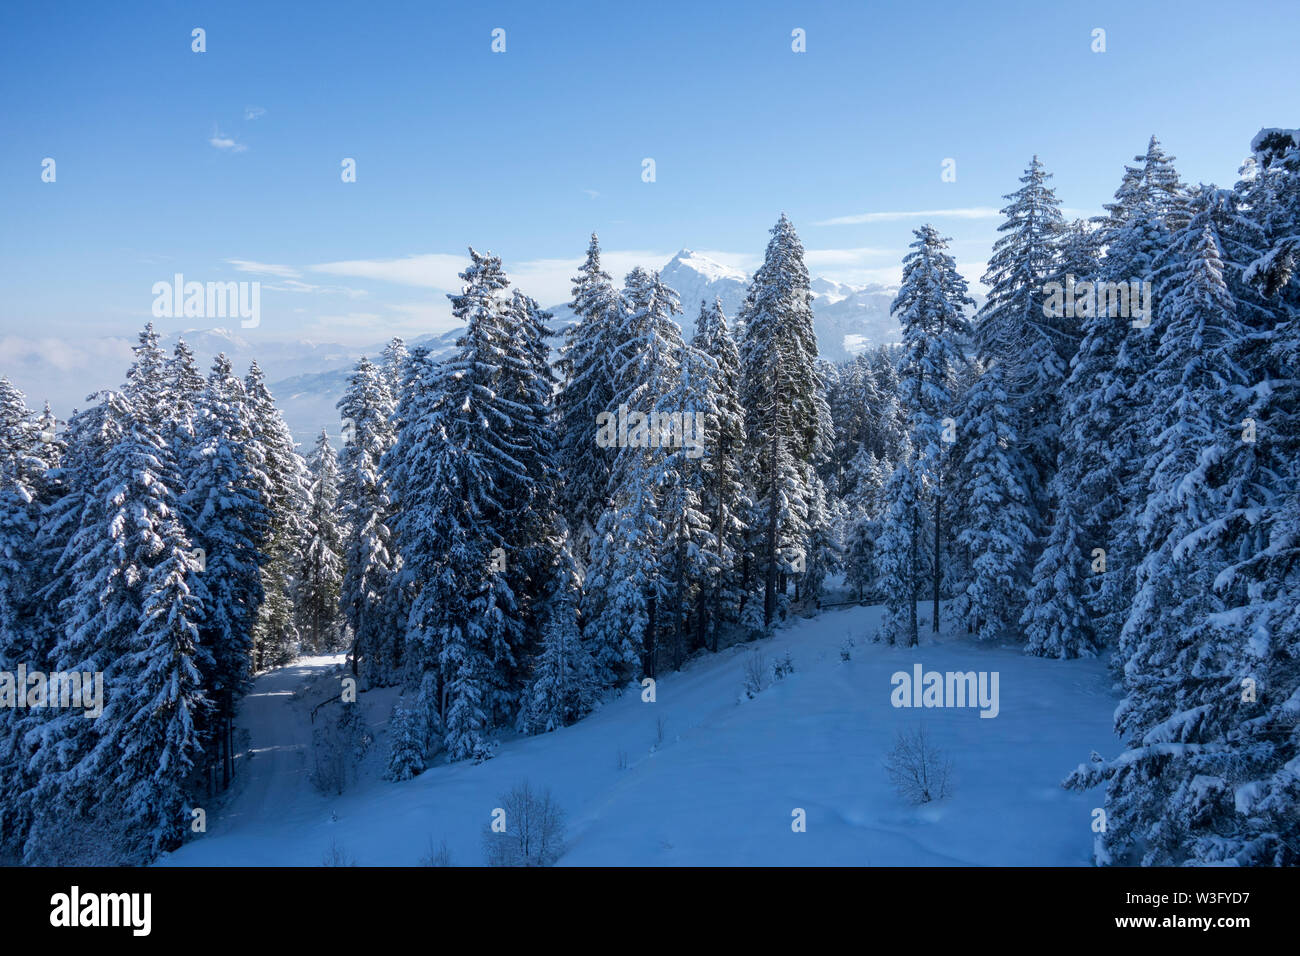 Winter in the mountains of Tirol, Austria - Stock Image